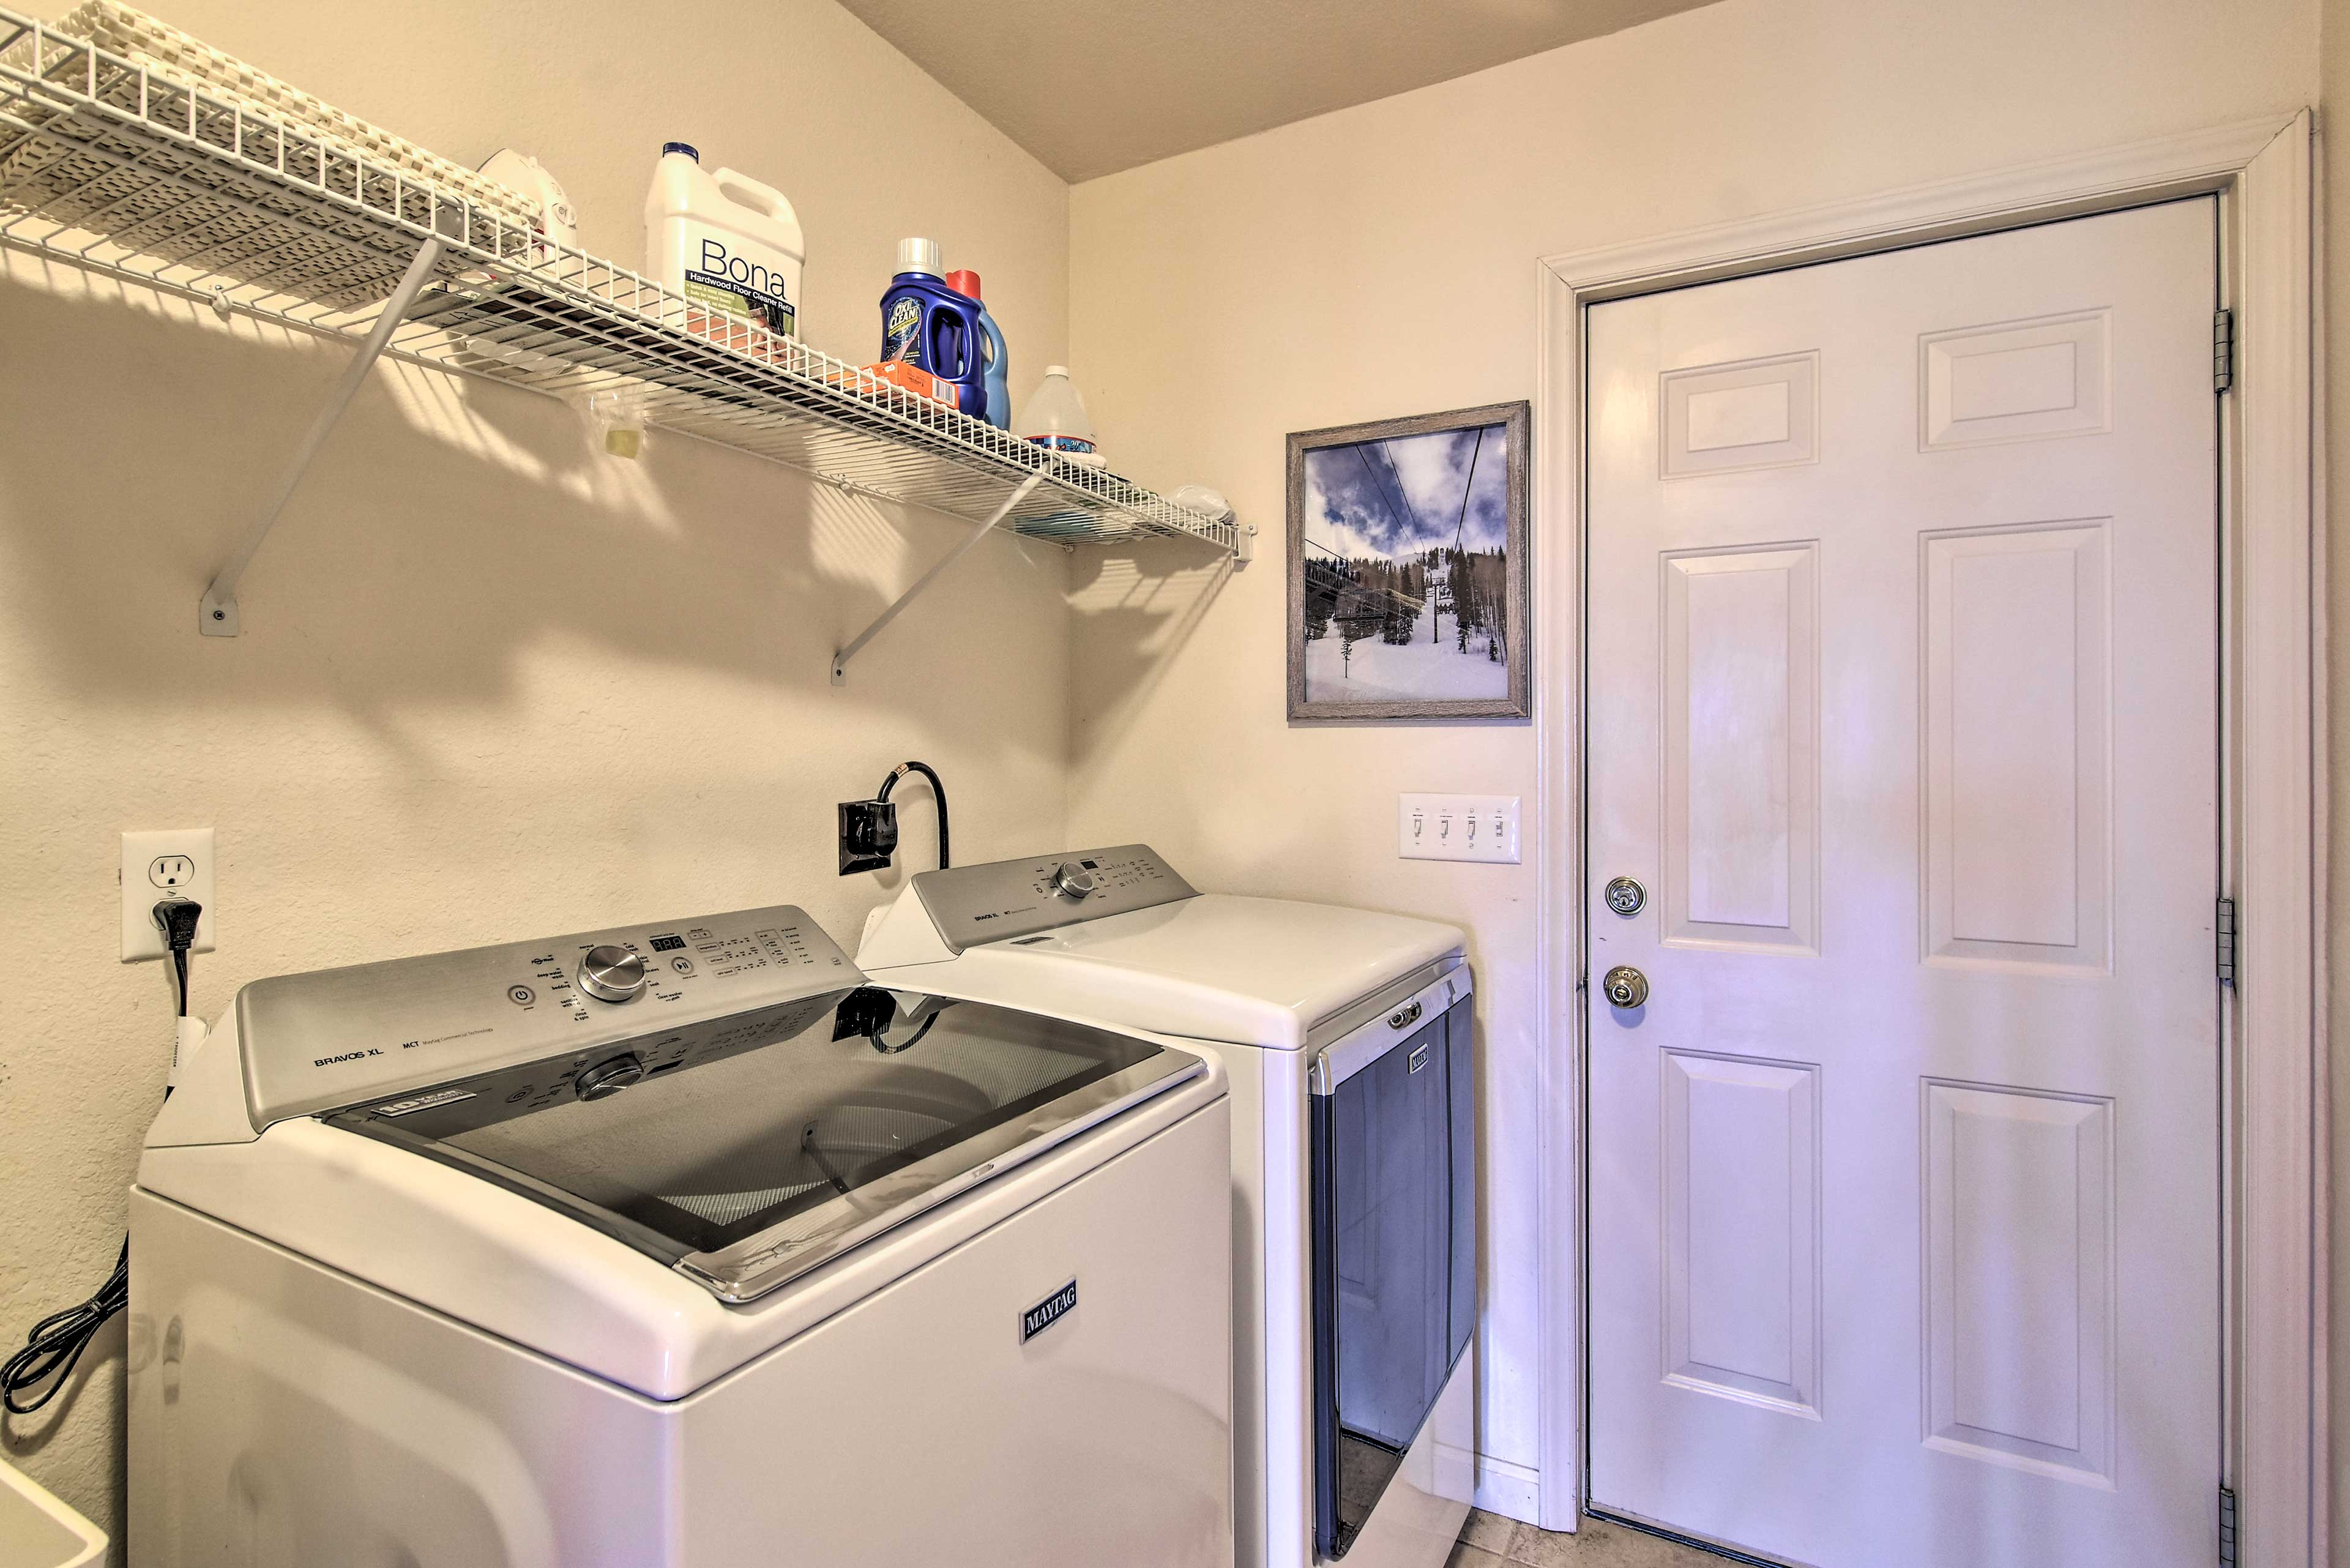 Pack light and play hard utilizing in-unit laundry machines.